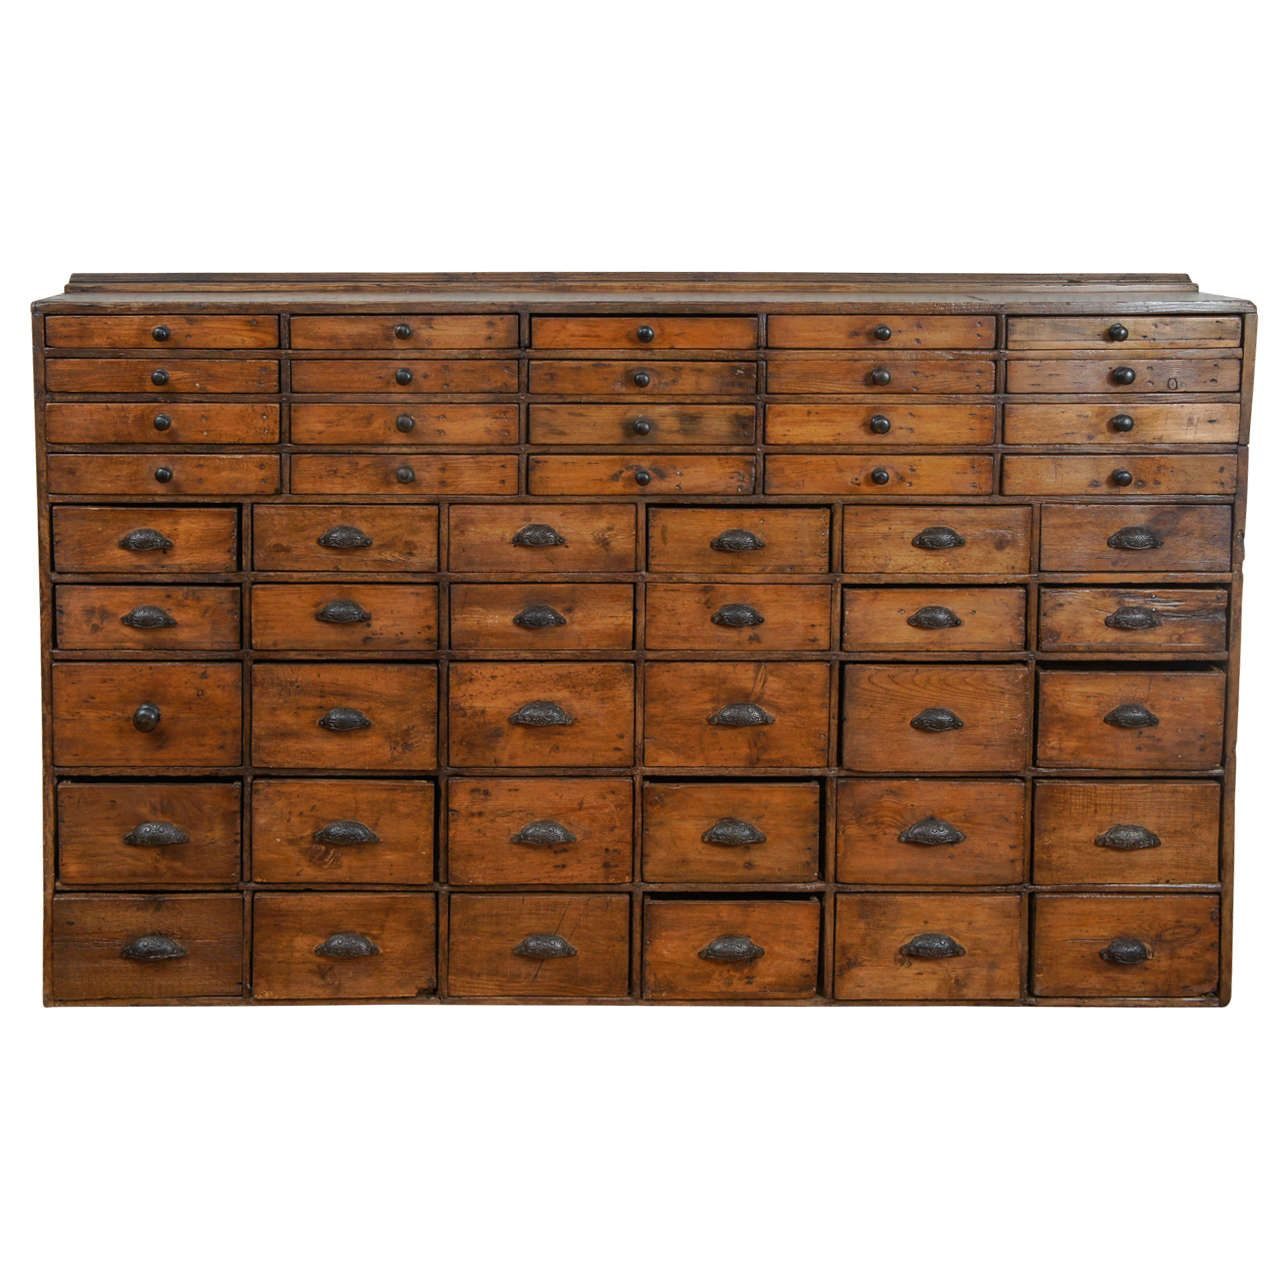 50 Drawer Pharmacy Apothecary  Apothecary cabinet